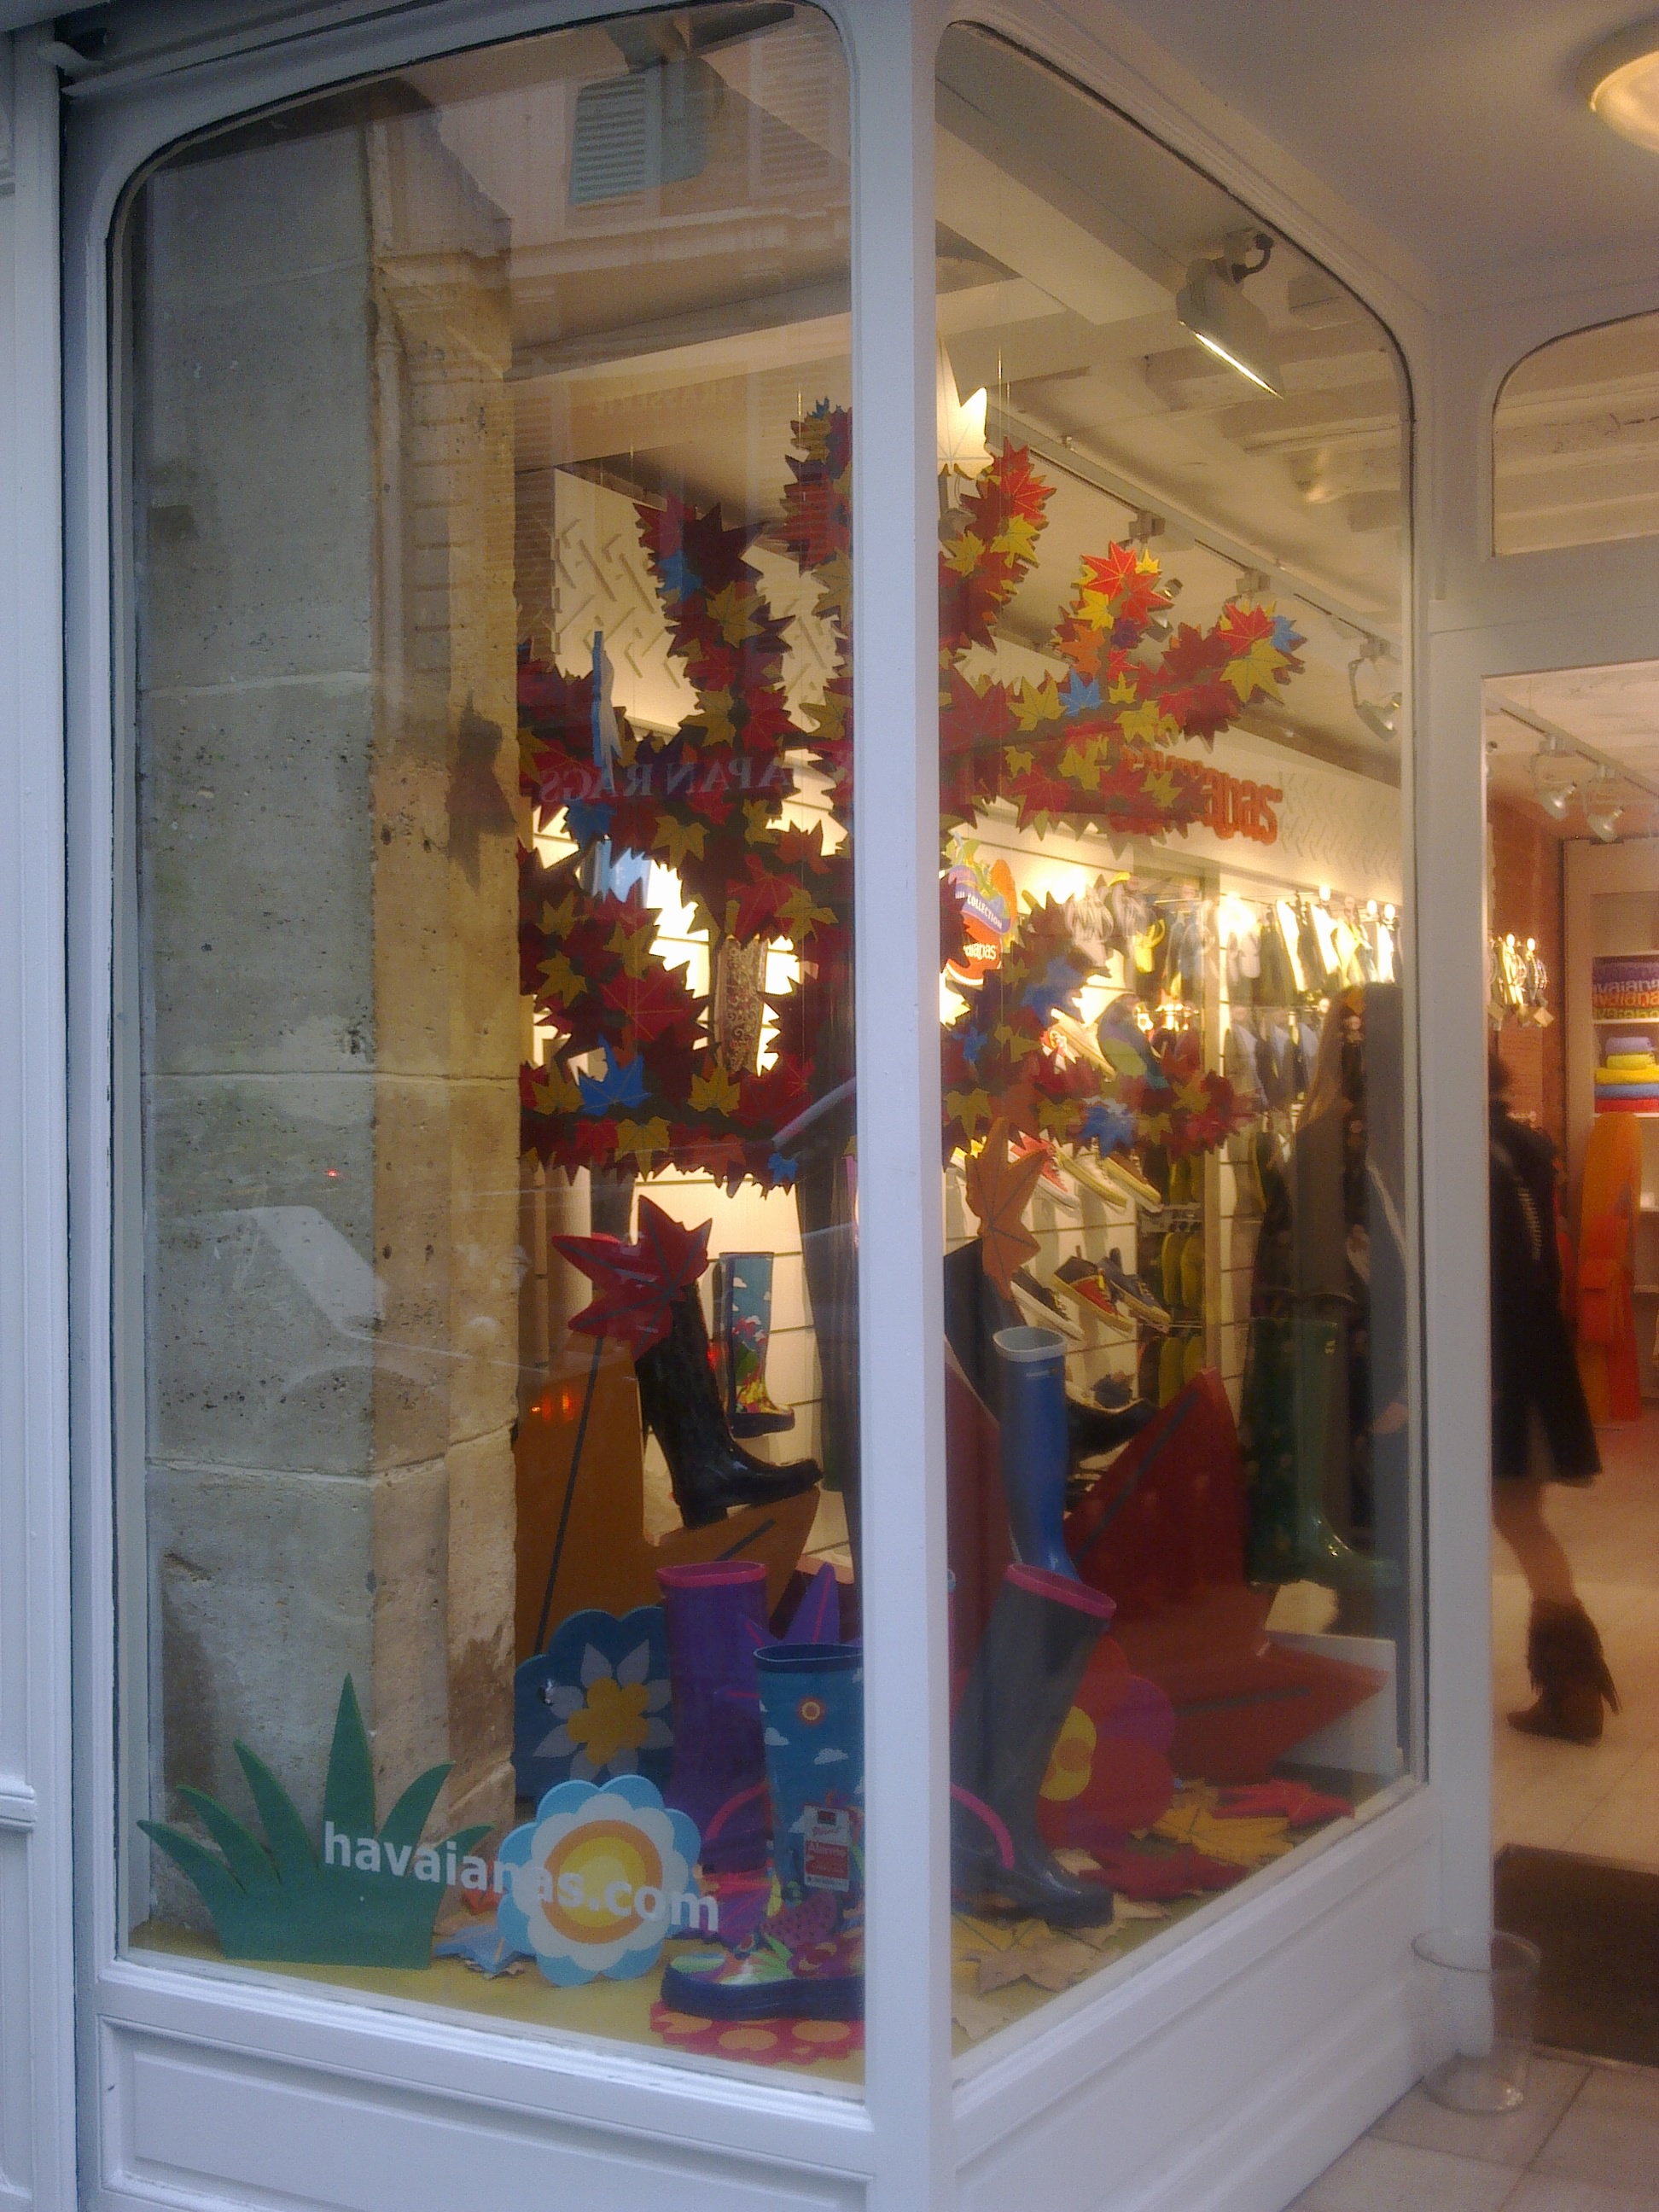 IC Escaparate Havaianas Paris (11).jpg